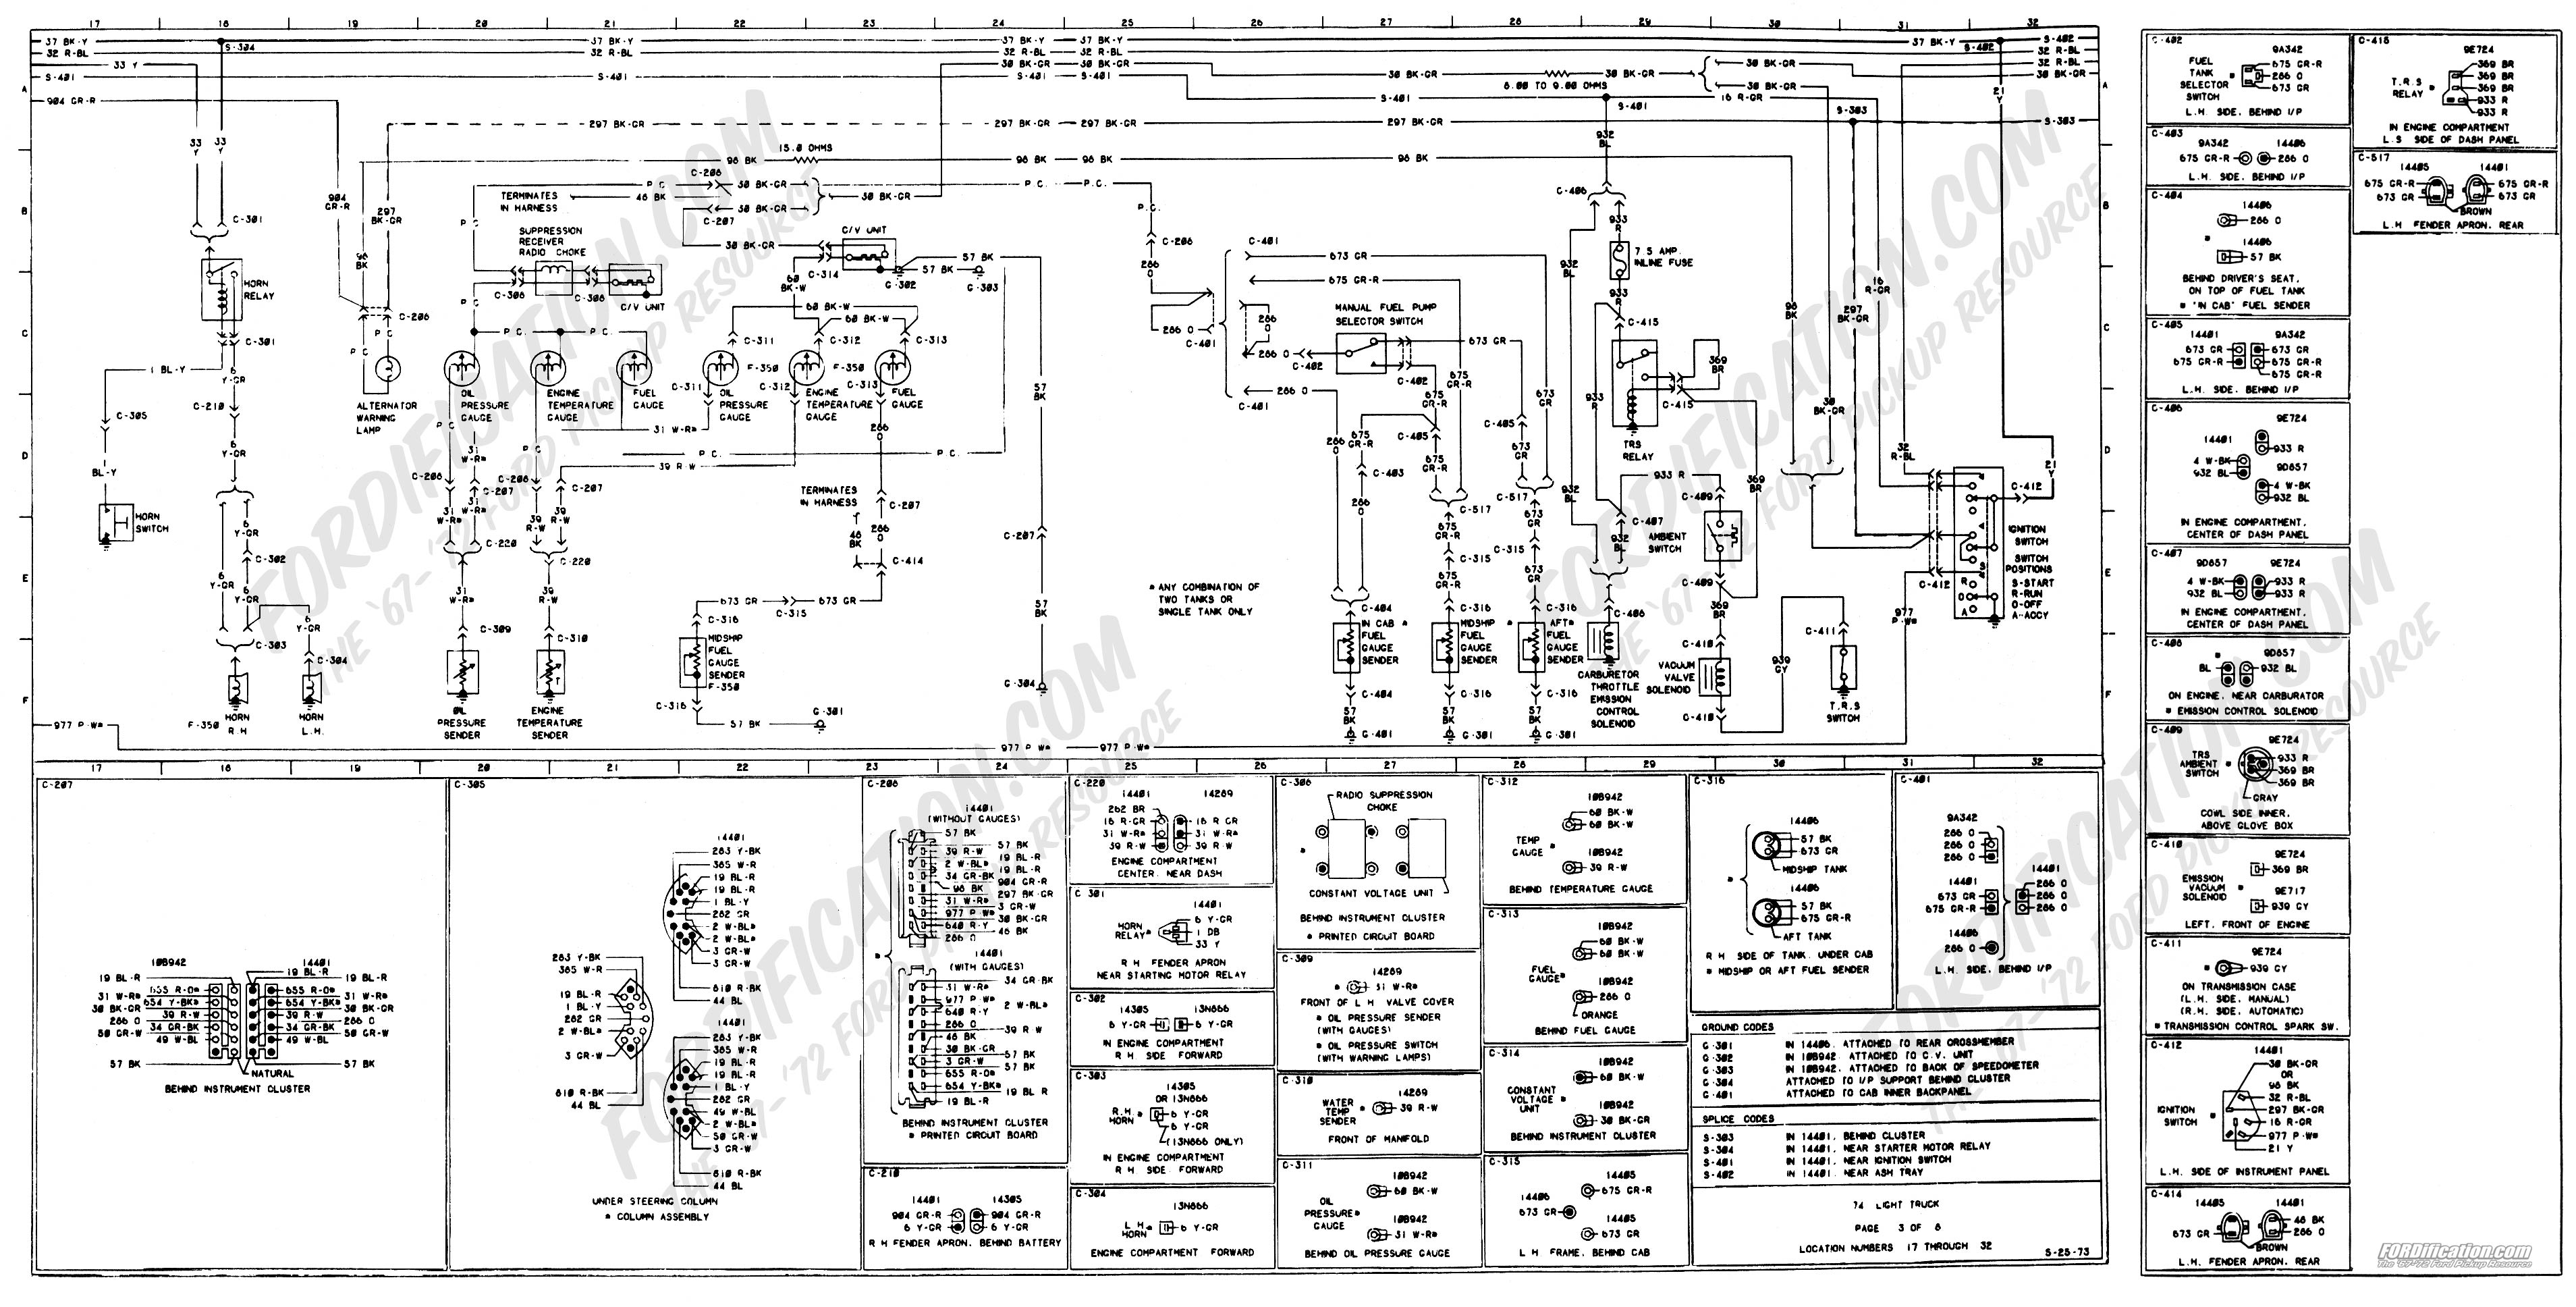 wiring_74master_3of8 1973 1979 ford truck wiring diagrams & schematics fordification net ford wiring schematics at virtualis.co